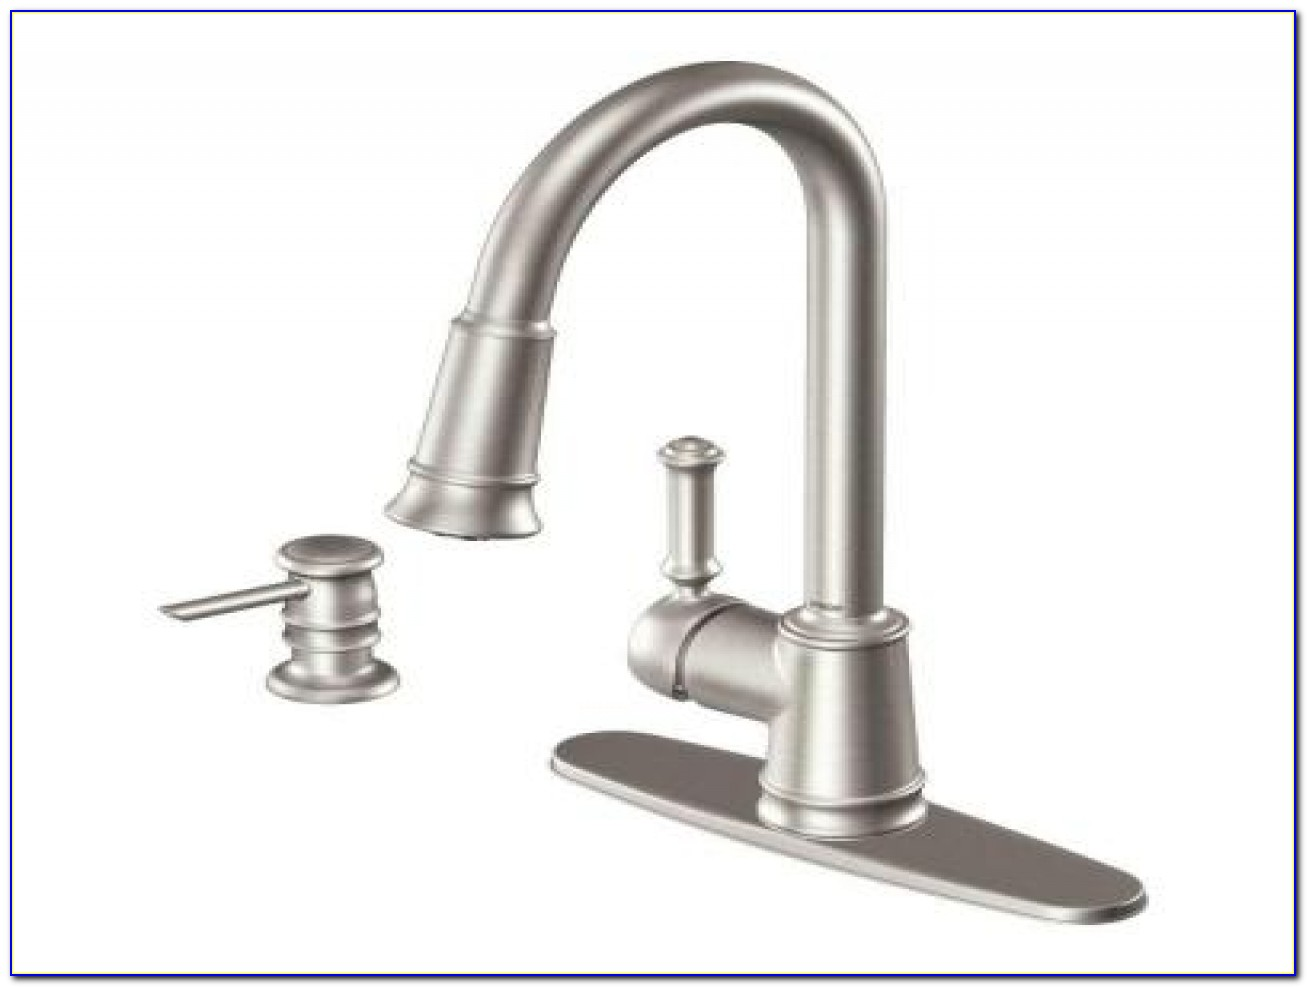 Moen Kitchen Faucet Schematic